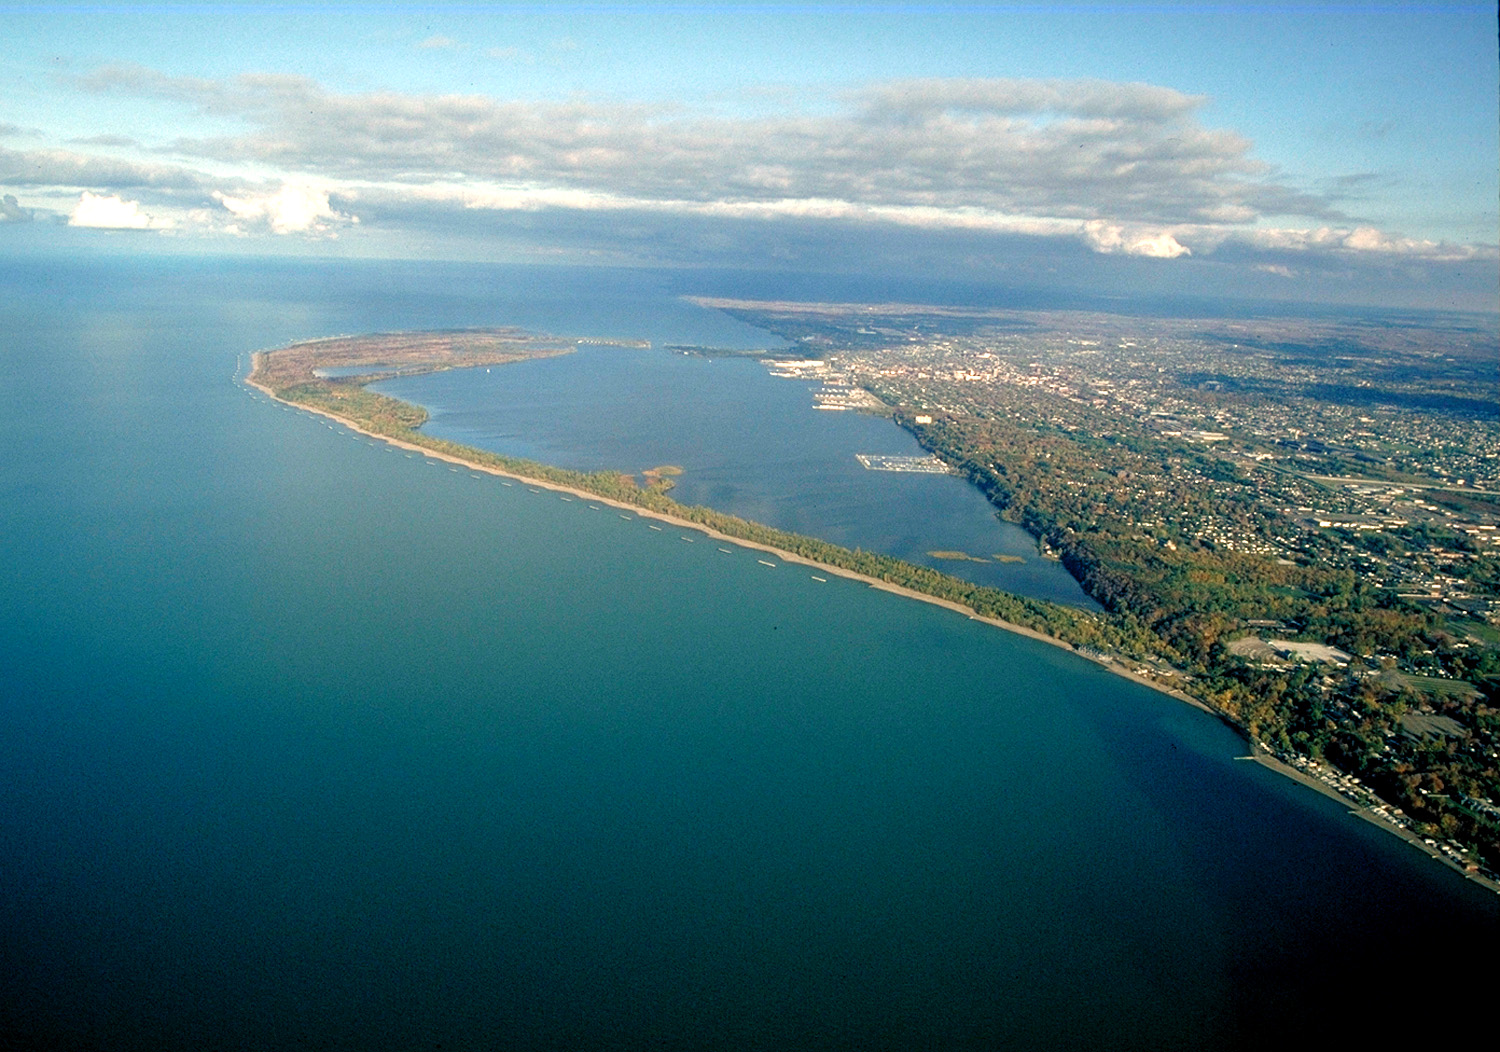 Lake Erie at Presque Isle off the city of Erie.